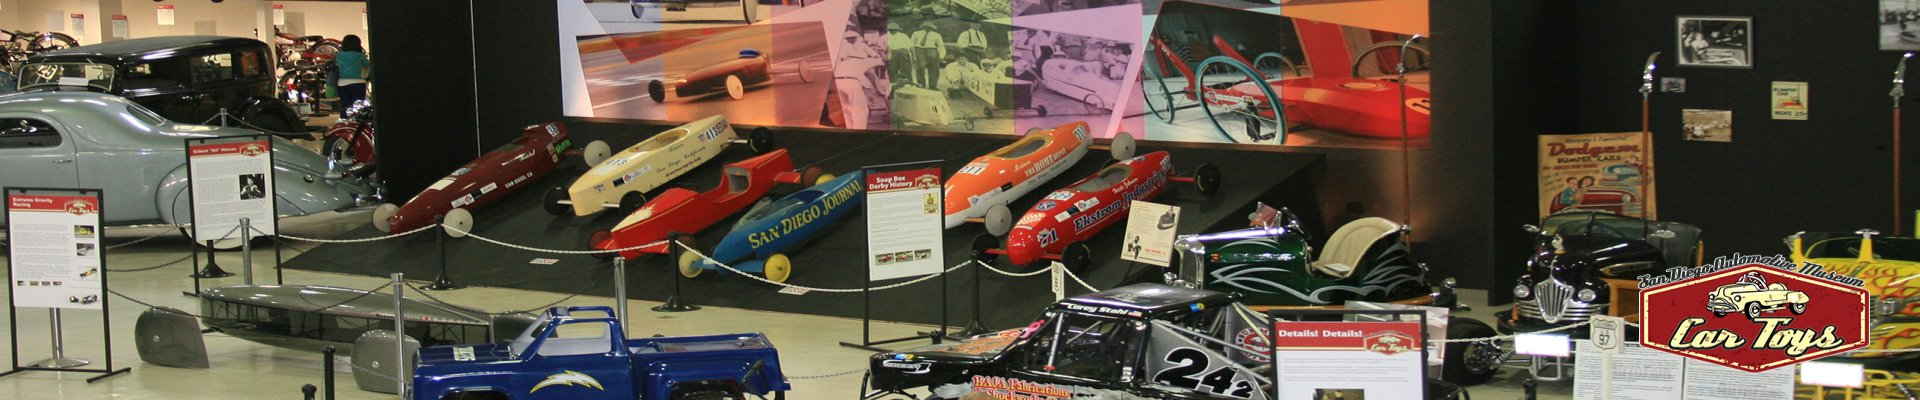 car toy exhibit